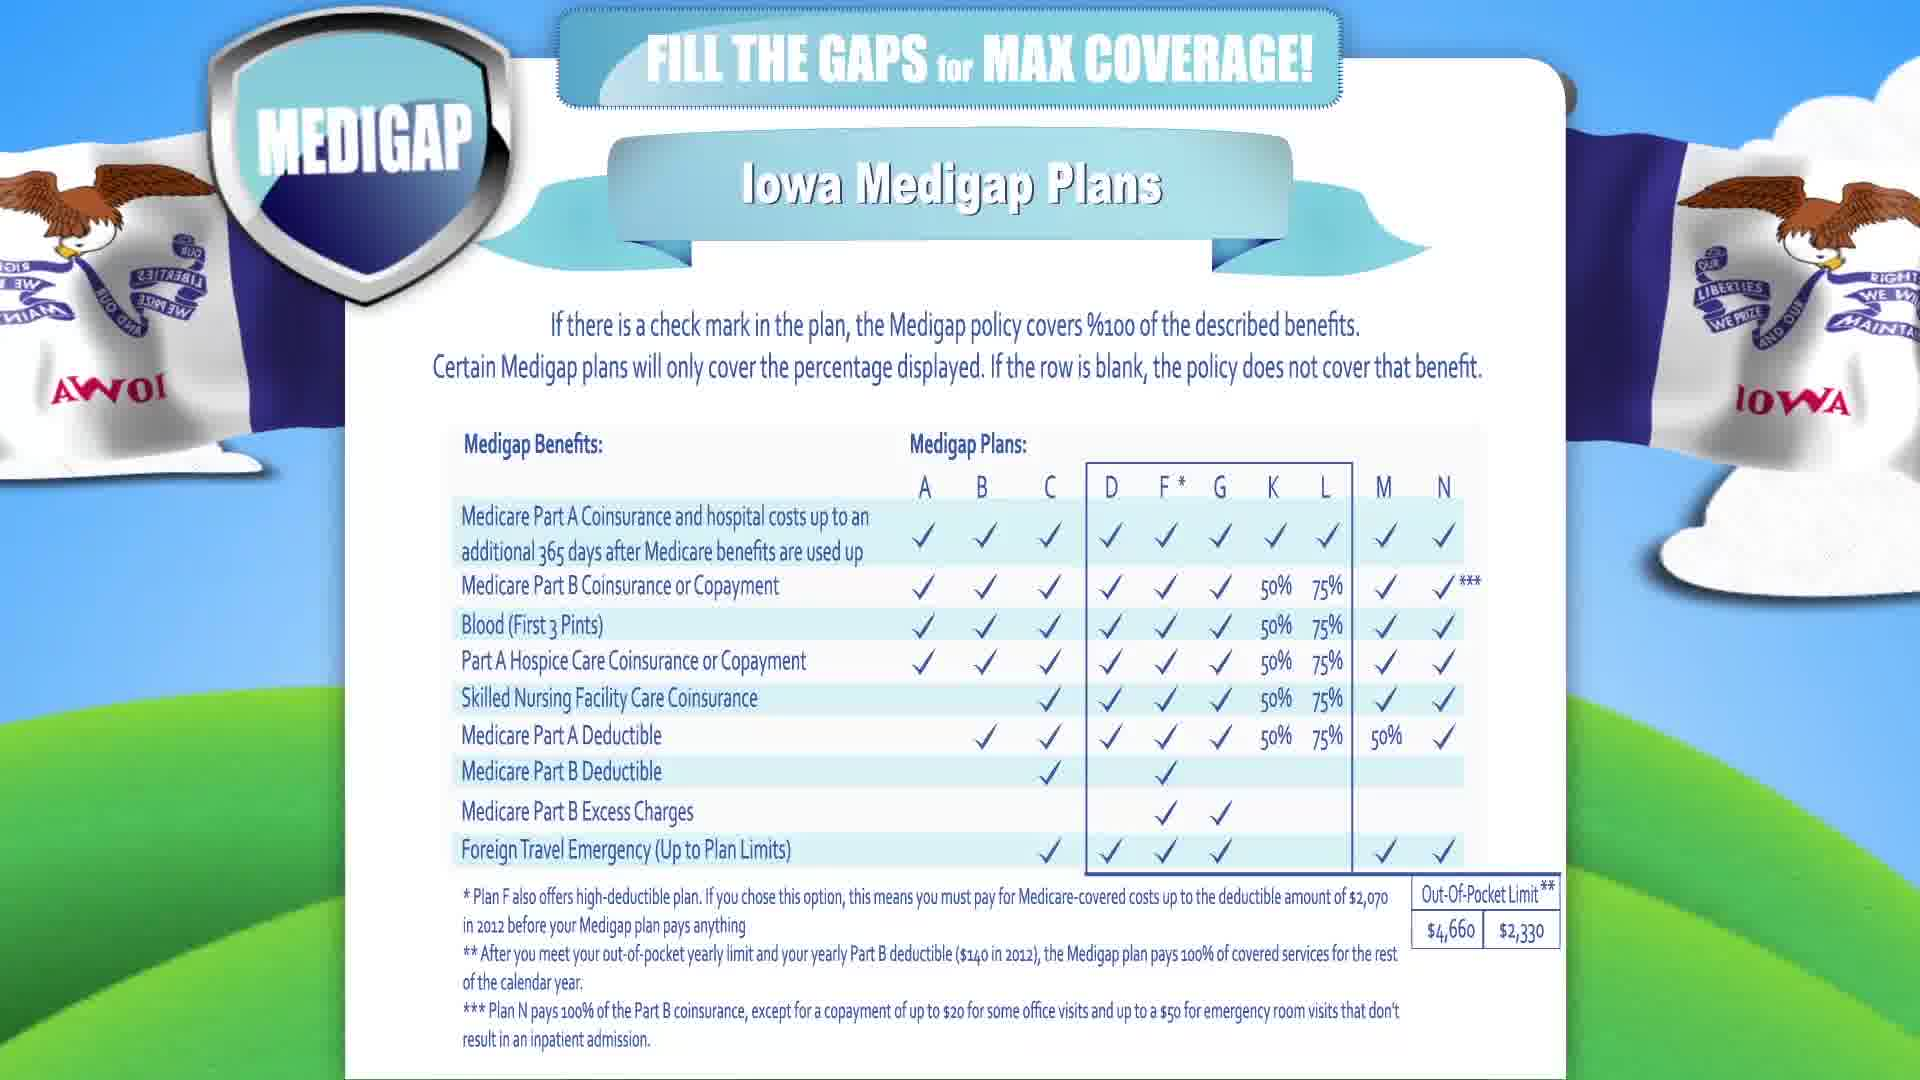 Medicare in Iowa